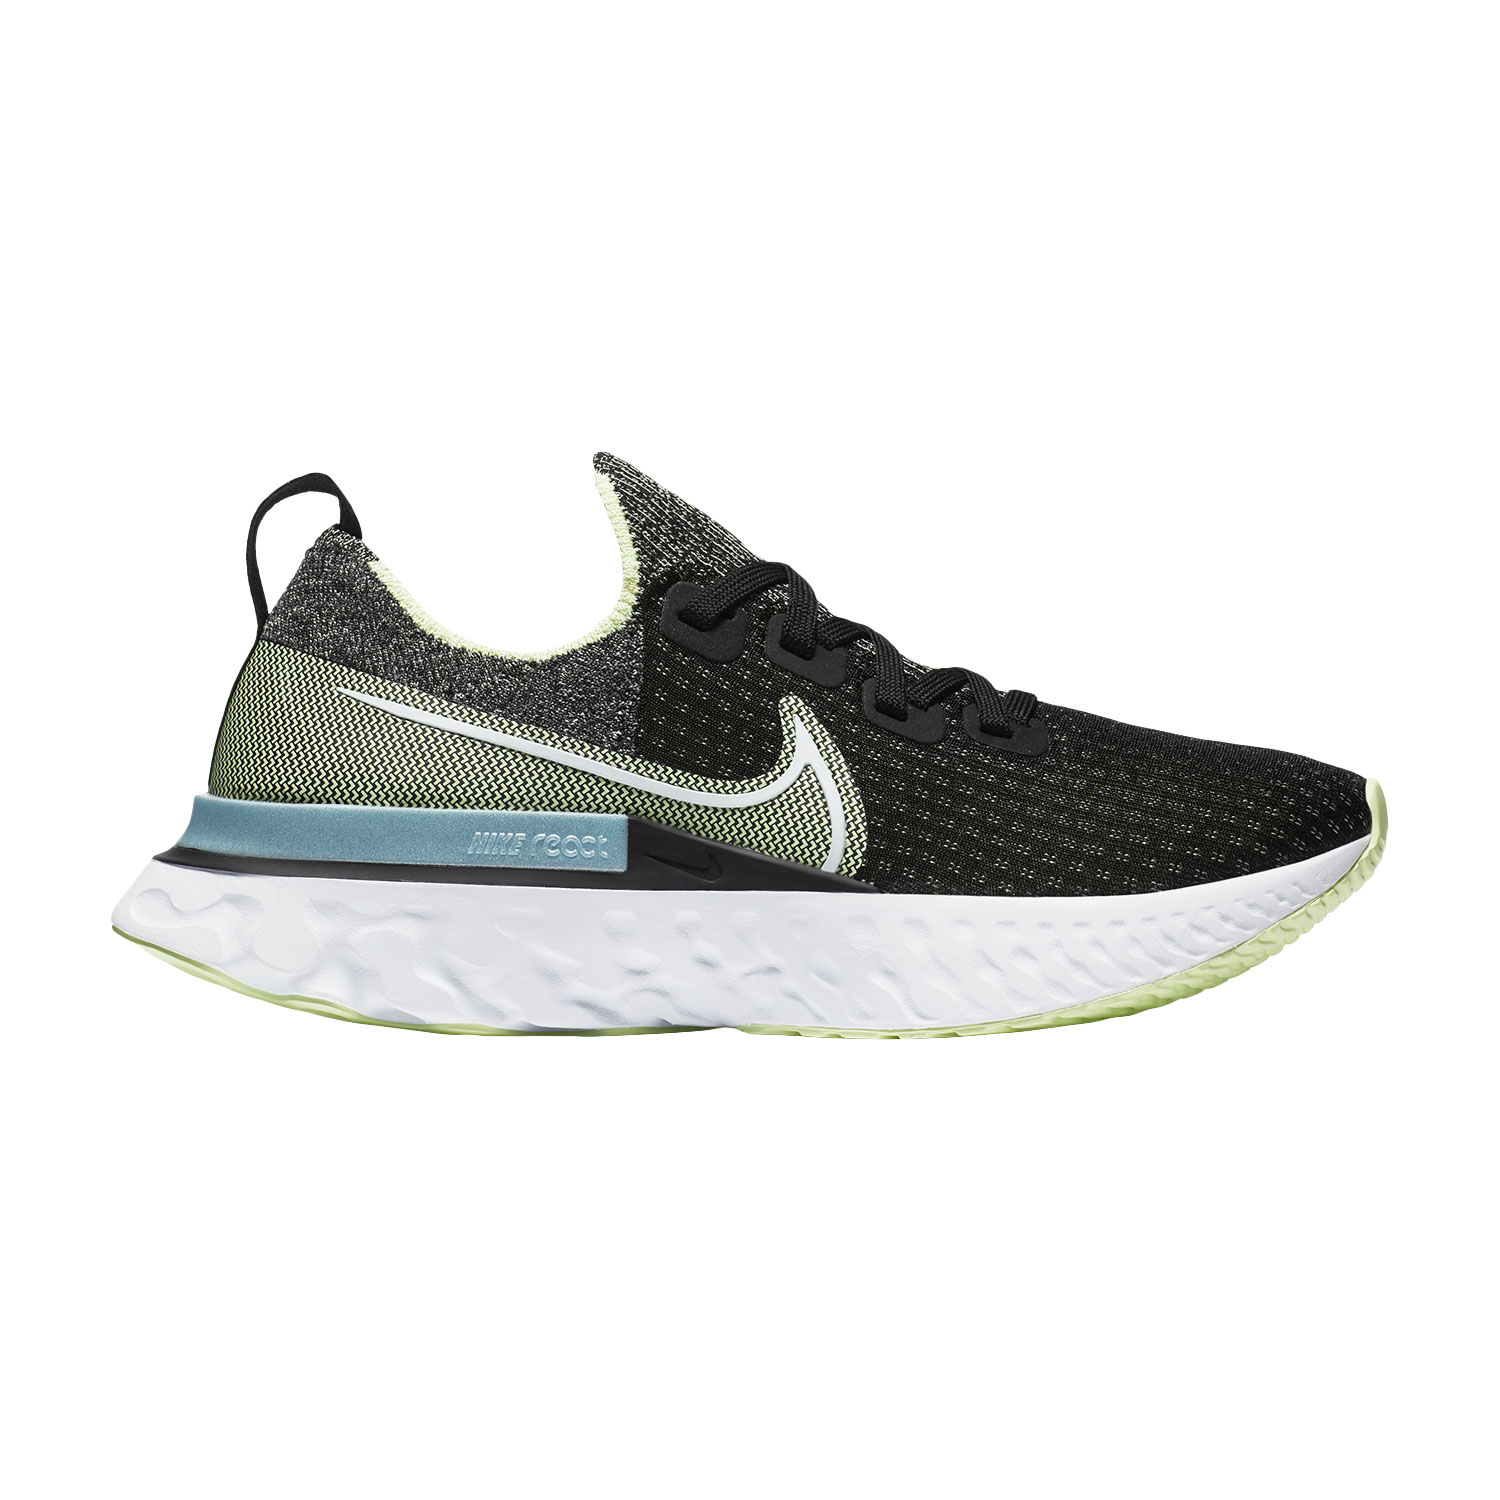 Nike React Infinity Run Flyknit - Black/White/Barely Volt/Glacier Ice